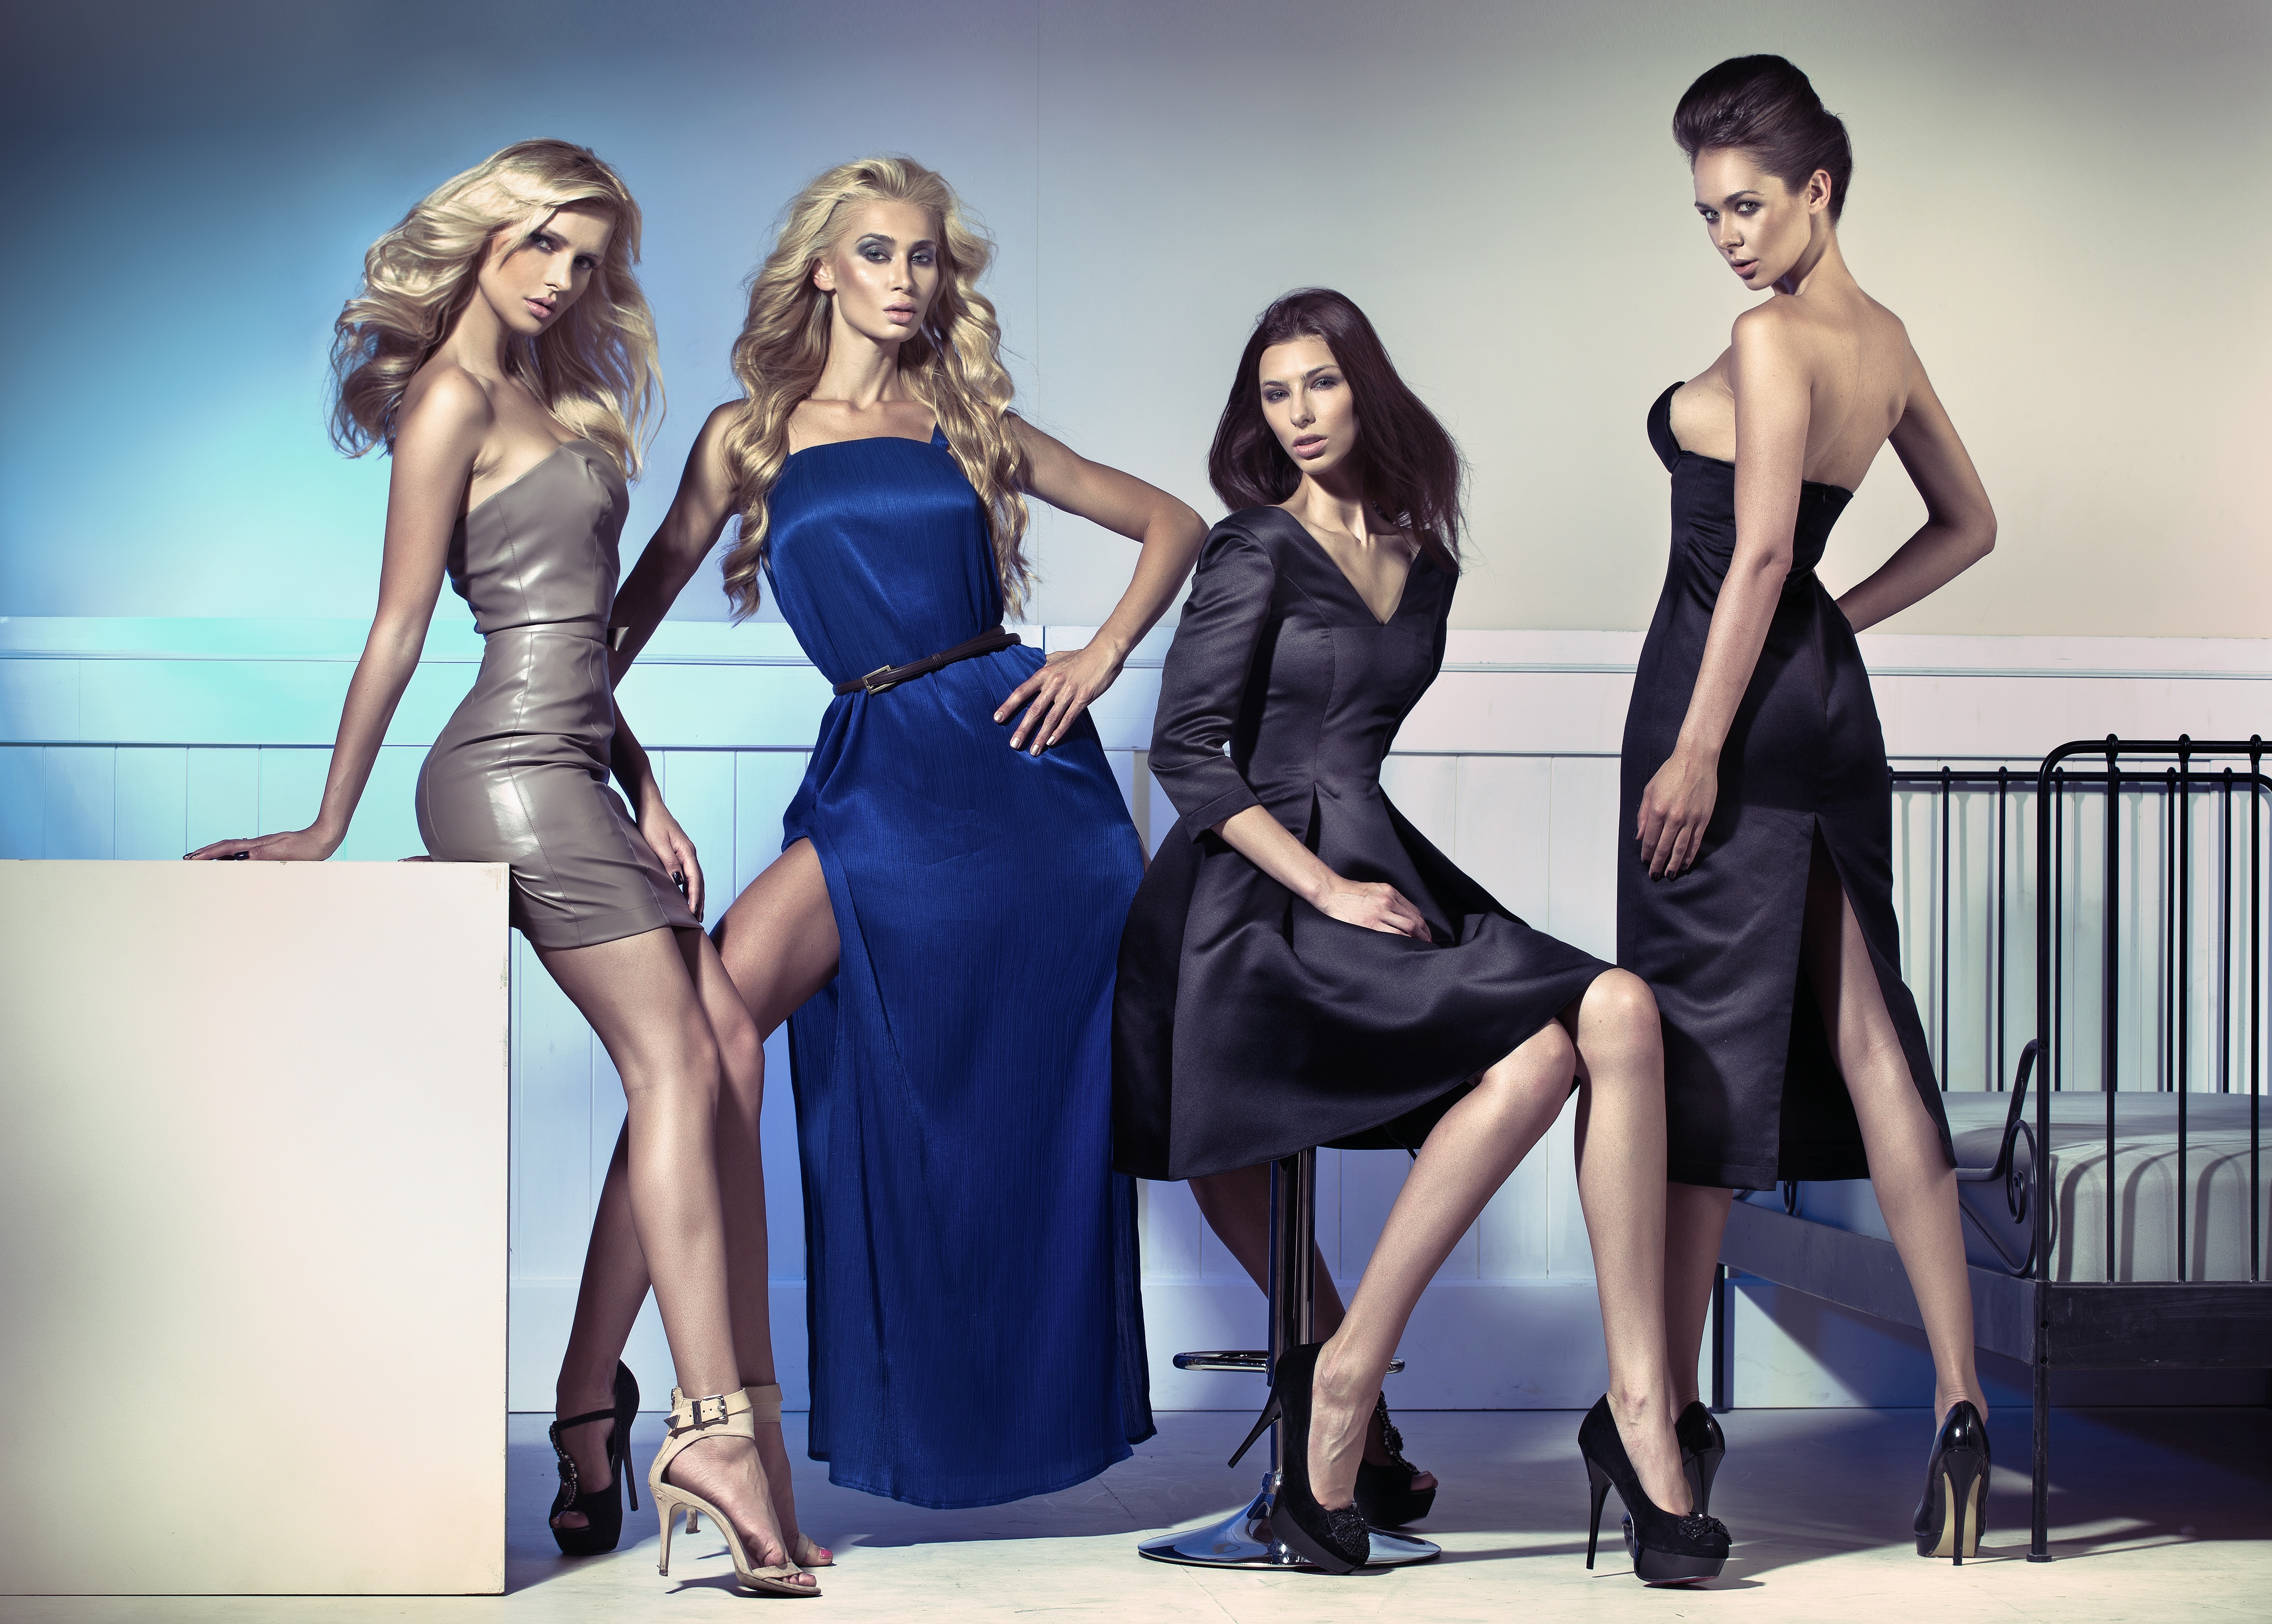 21791878 – fashion photo of four attractive female models